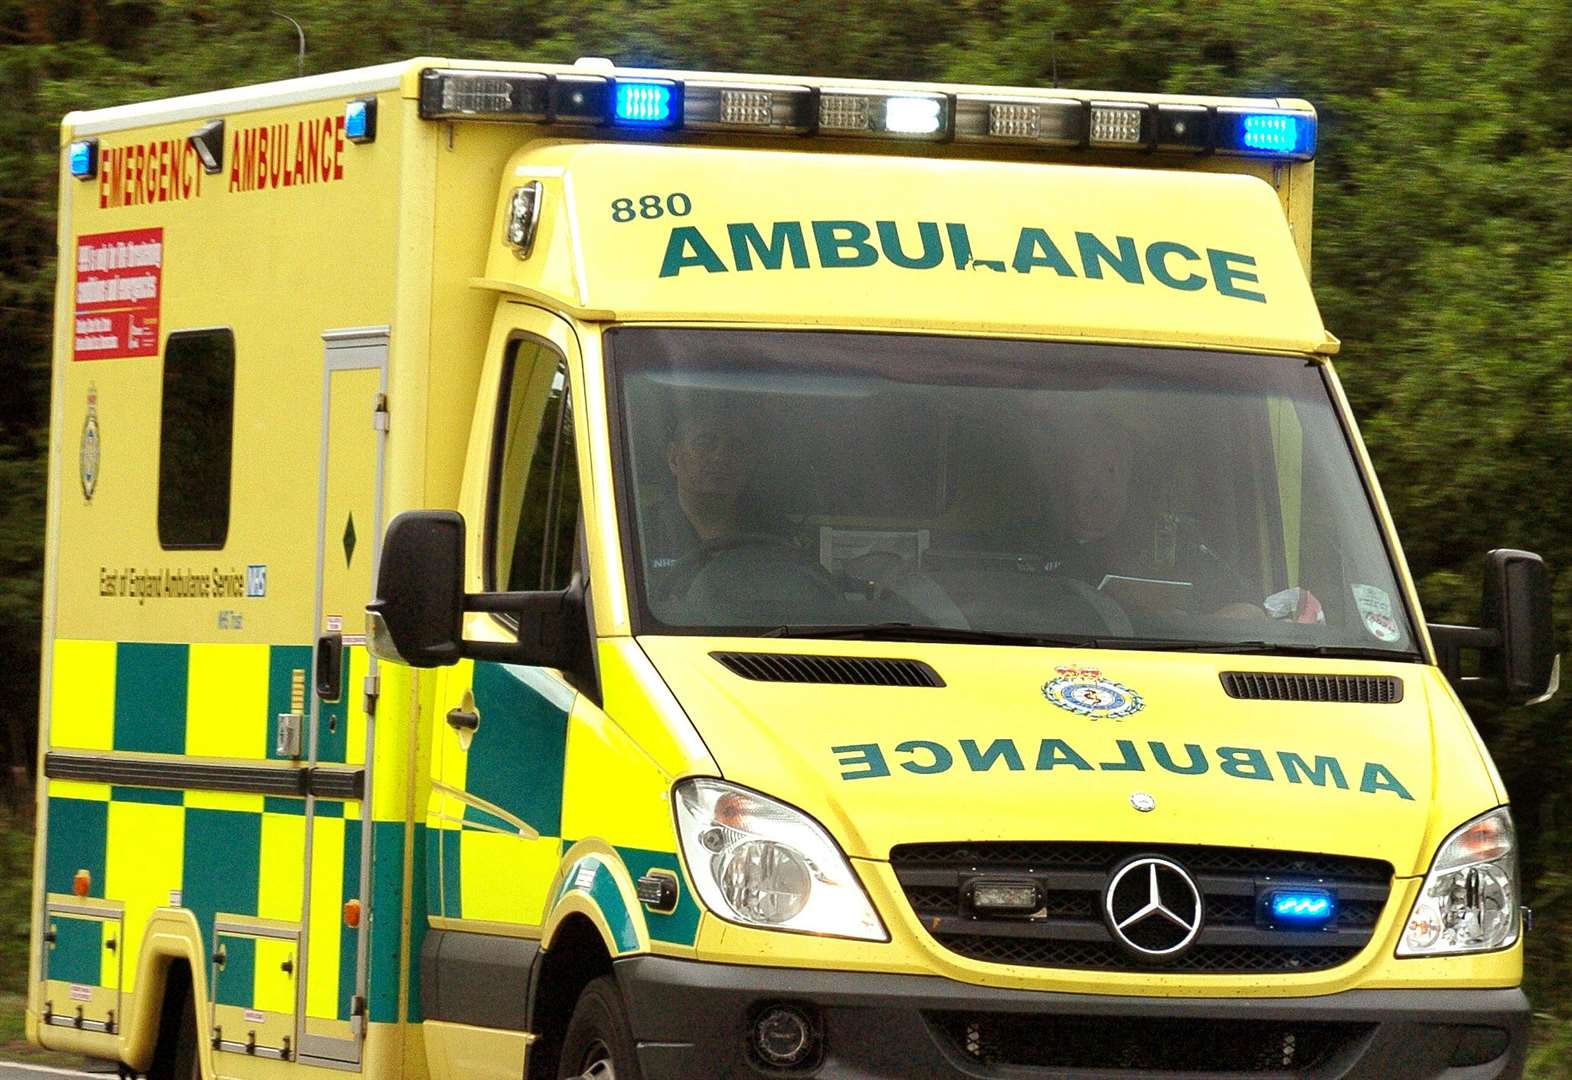 Paramedics, fire service and police called to 'medical emergency' in Bury St Edmunds